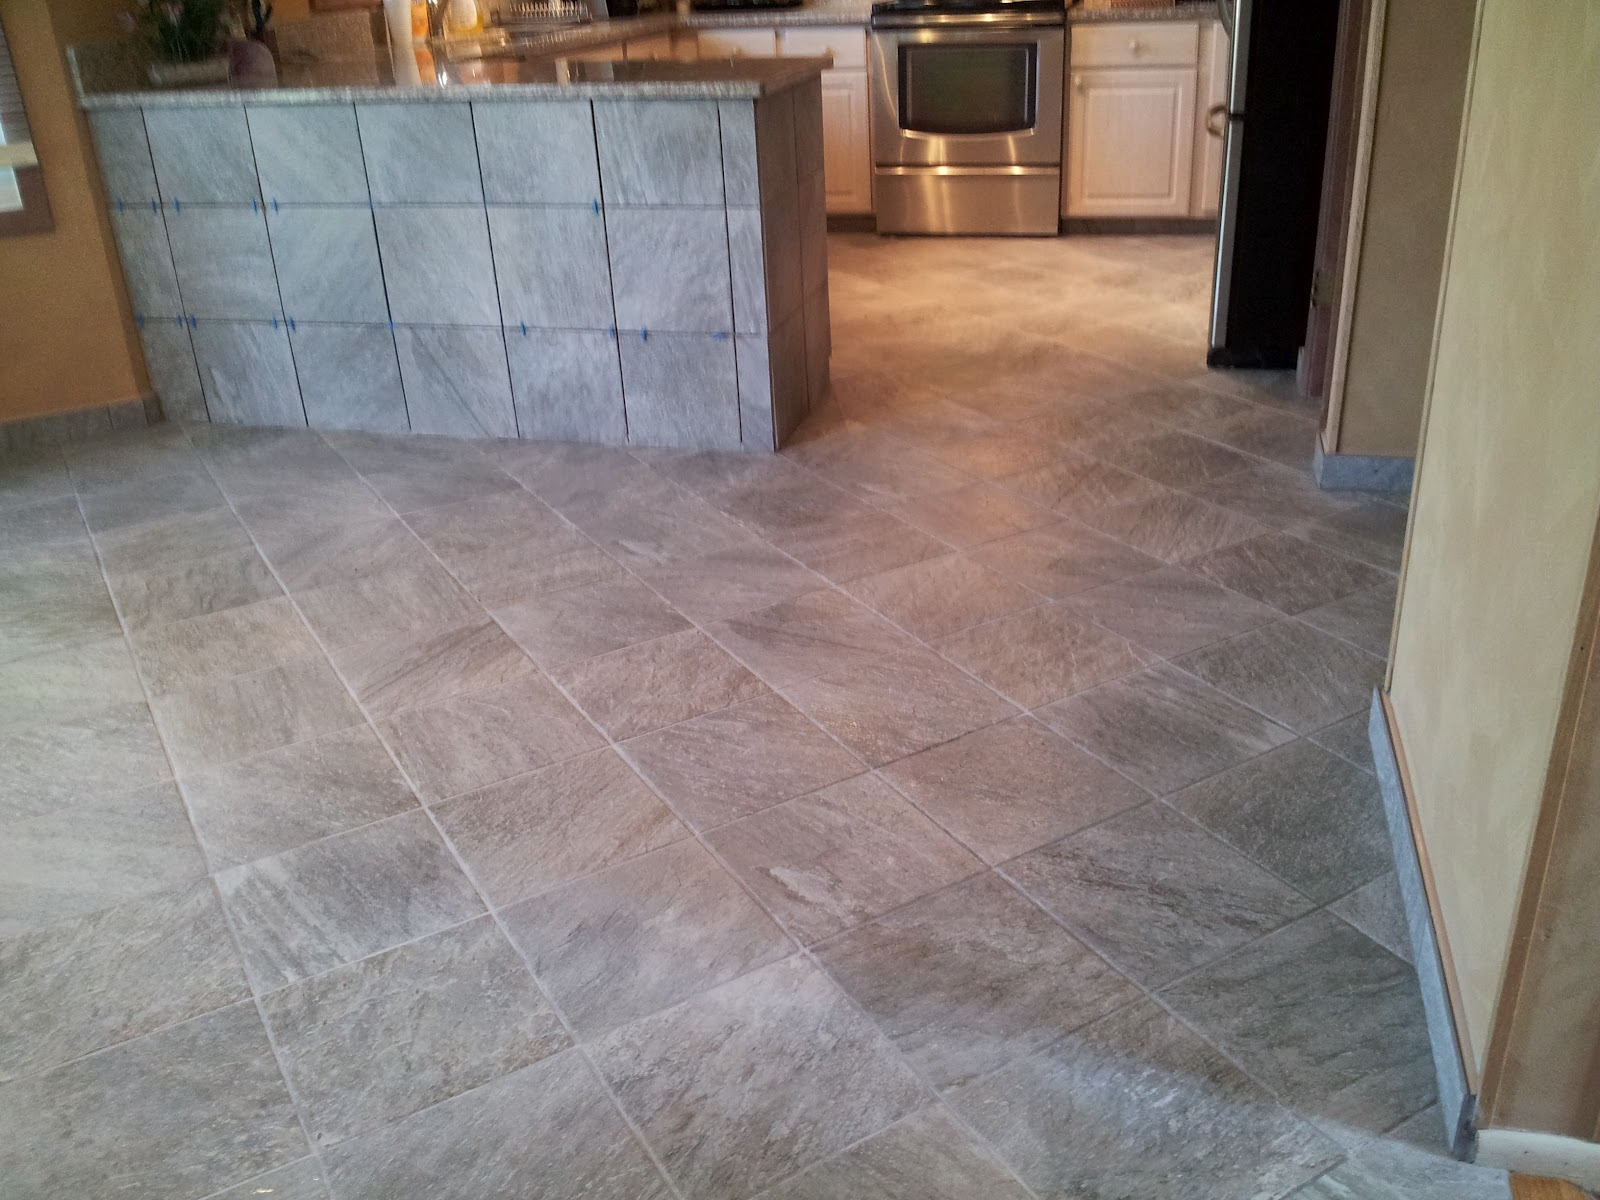 Floor installation photos slate looking porcelain tile in richboro pa Ceramic tile flooring installation